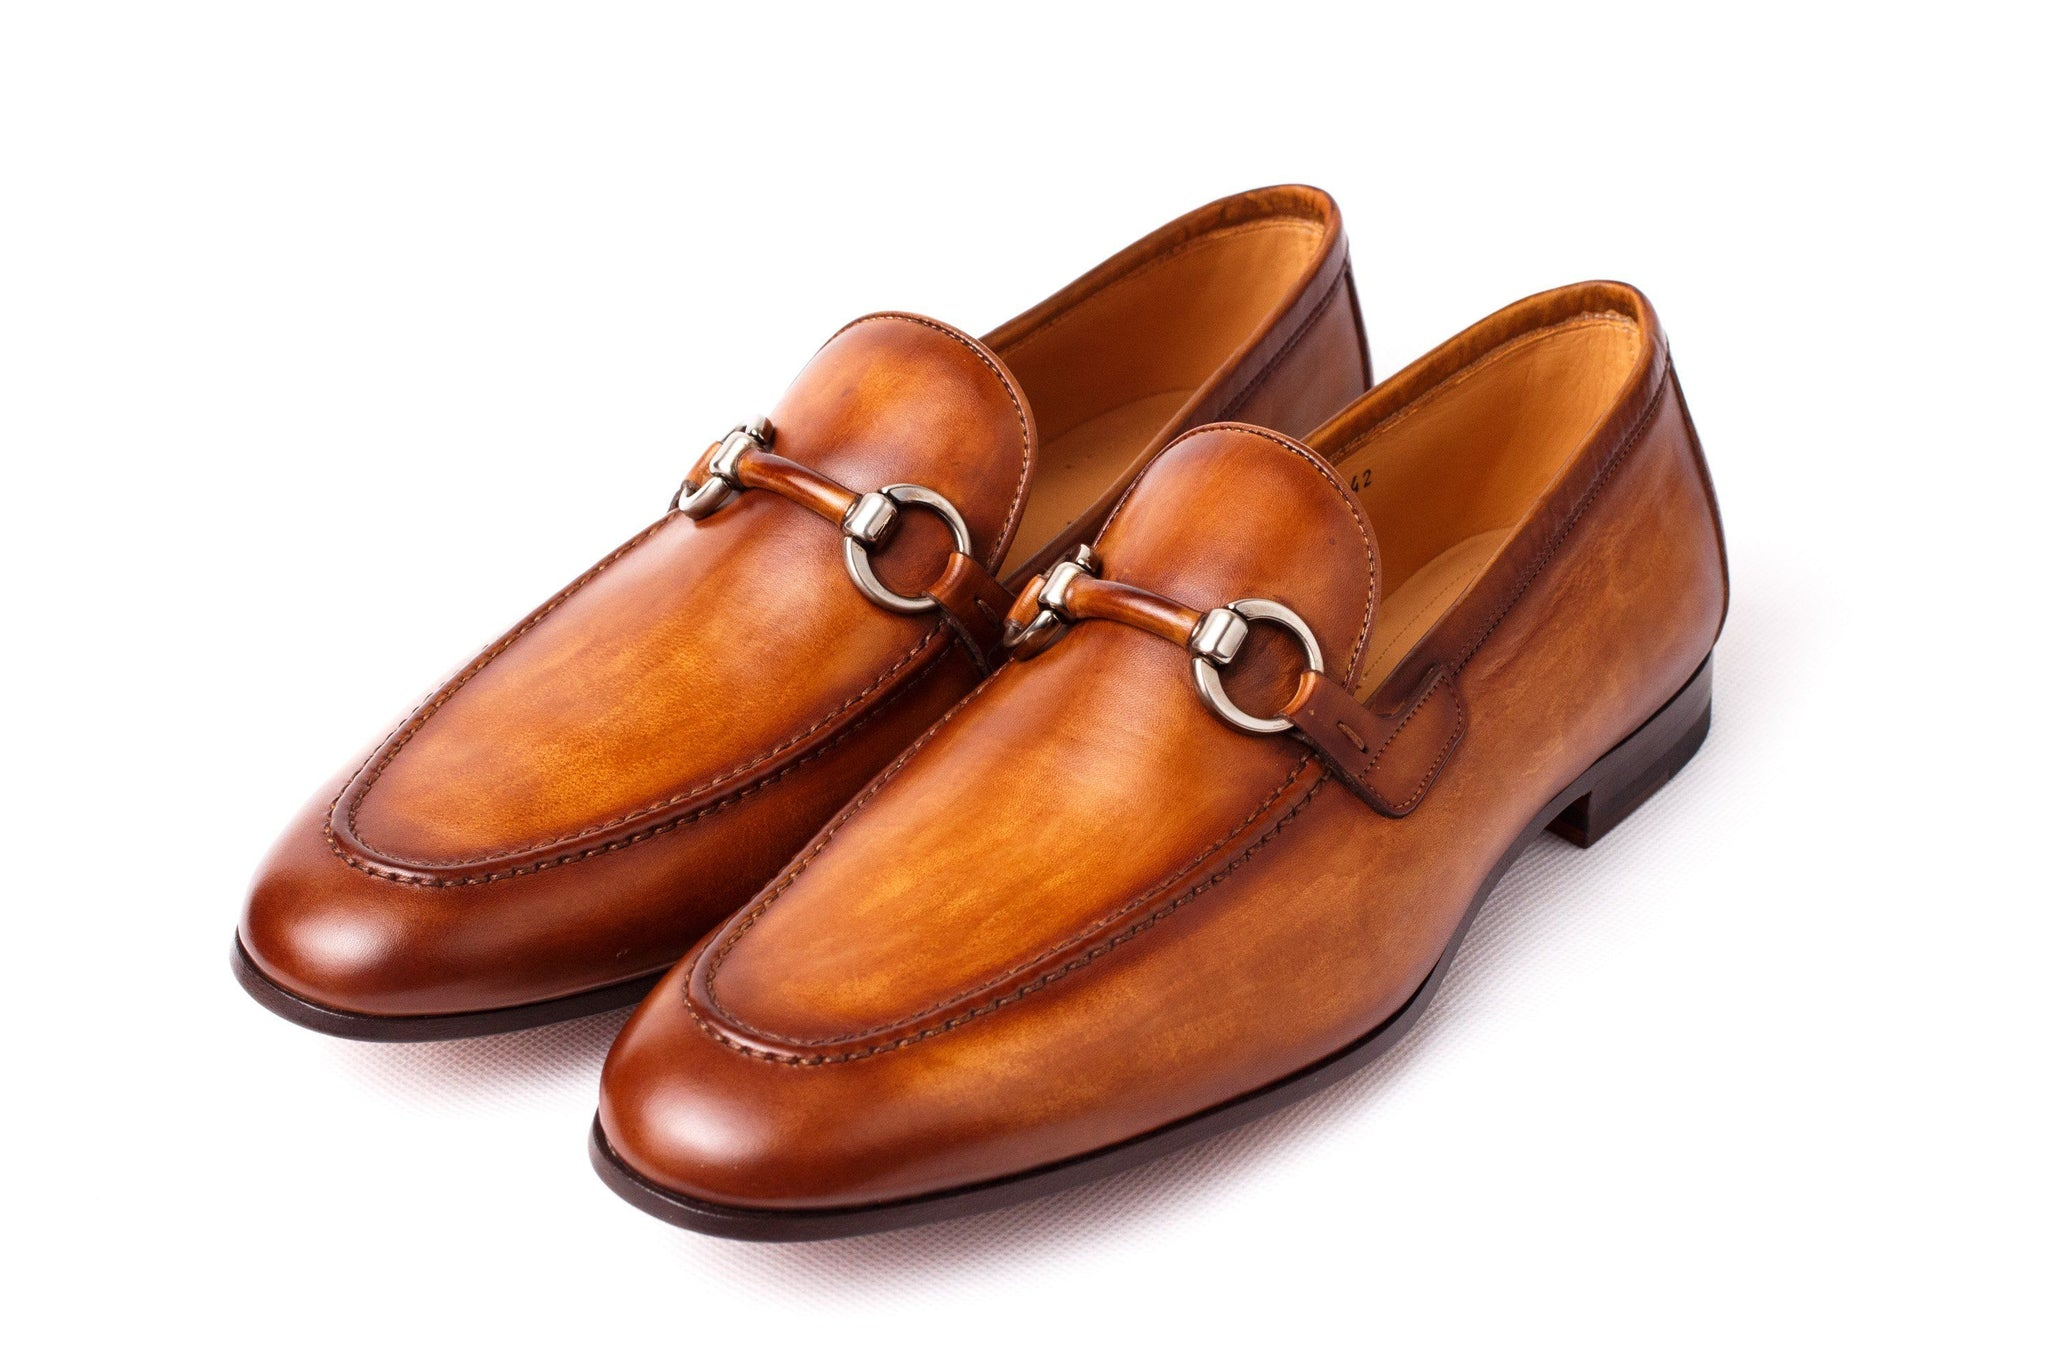 Magnanni - Walter Loafer like Gucci Loafers